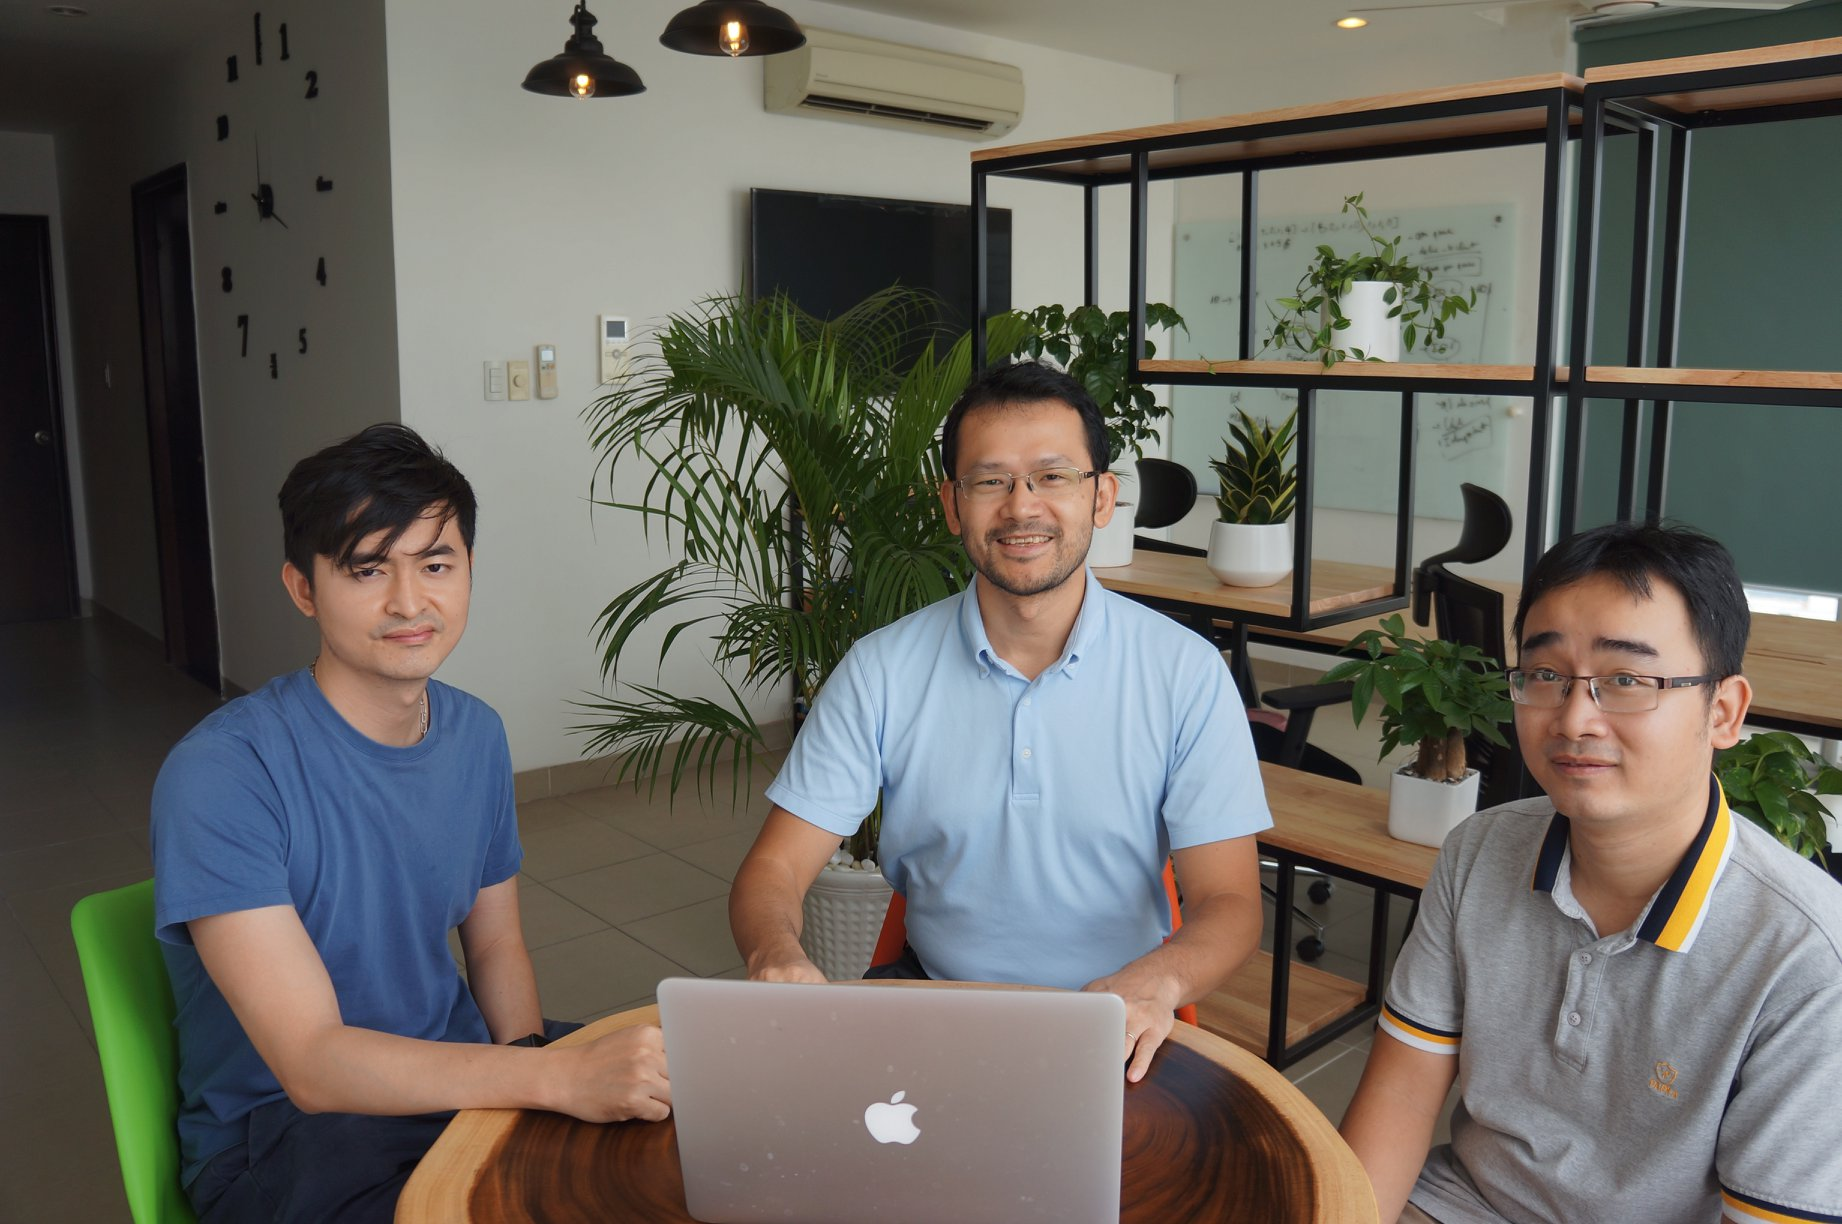 Palexy raises $1 million in the seed round of financing led by Do Ventures and Access Ventures